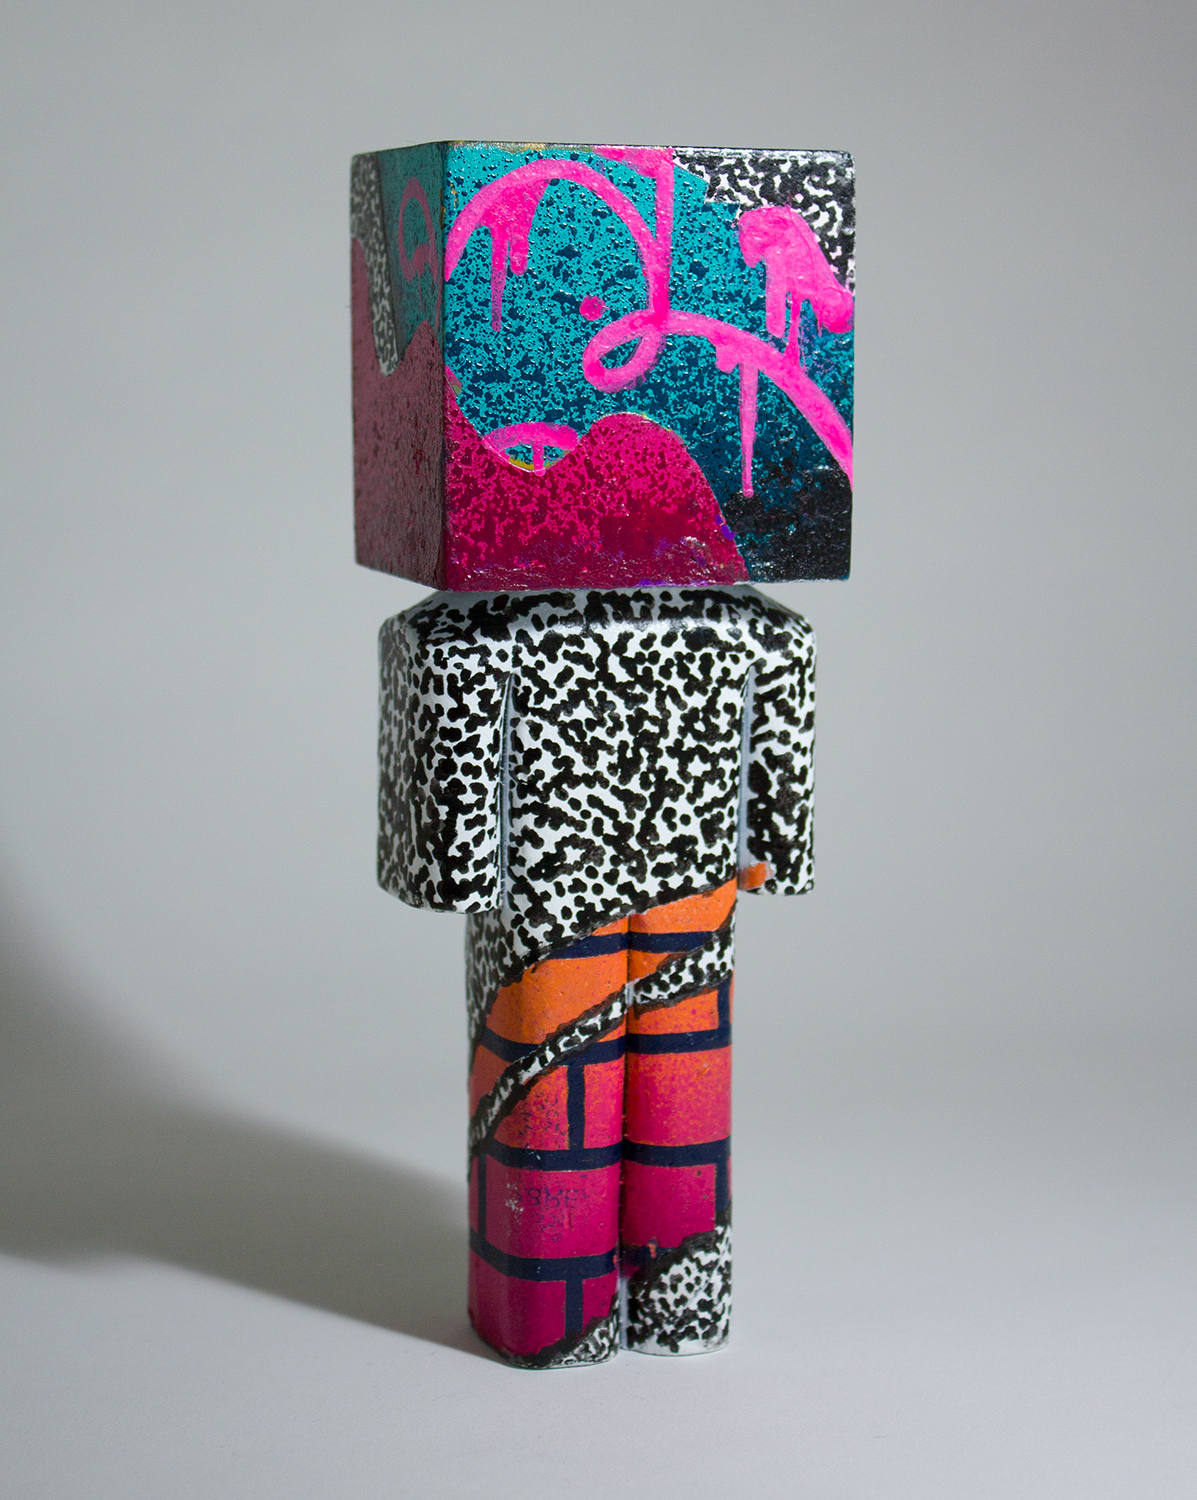 """""""Scatterbrained"""" Collaboration with Matt Field. Basswood, spray paint, and paint pen. 6.5 x 2.25 x 1.75 inches. CSK 018G"""